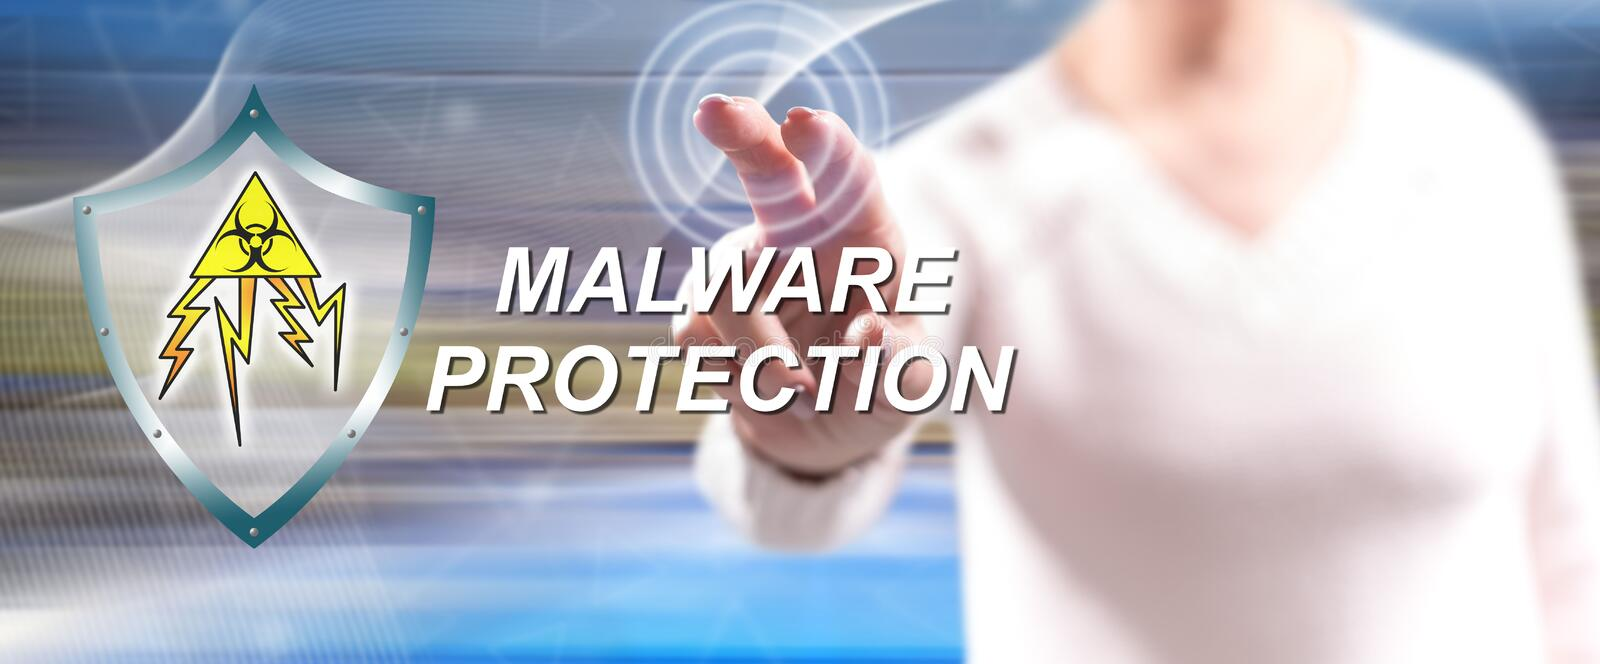 Woman touching a malware protection concept royalty free stock photo